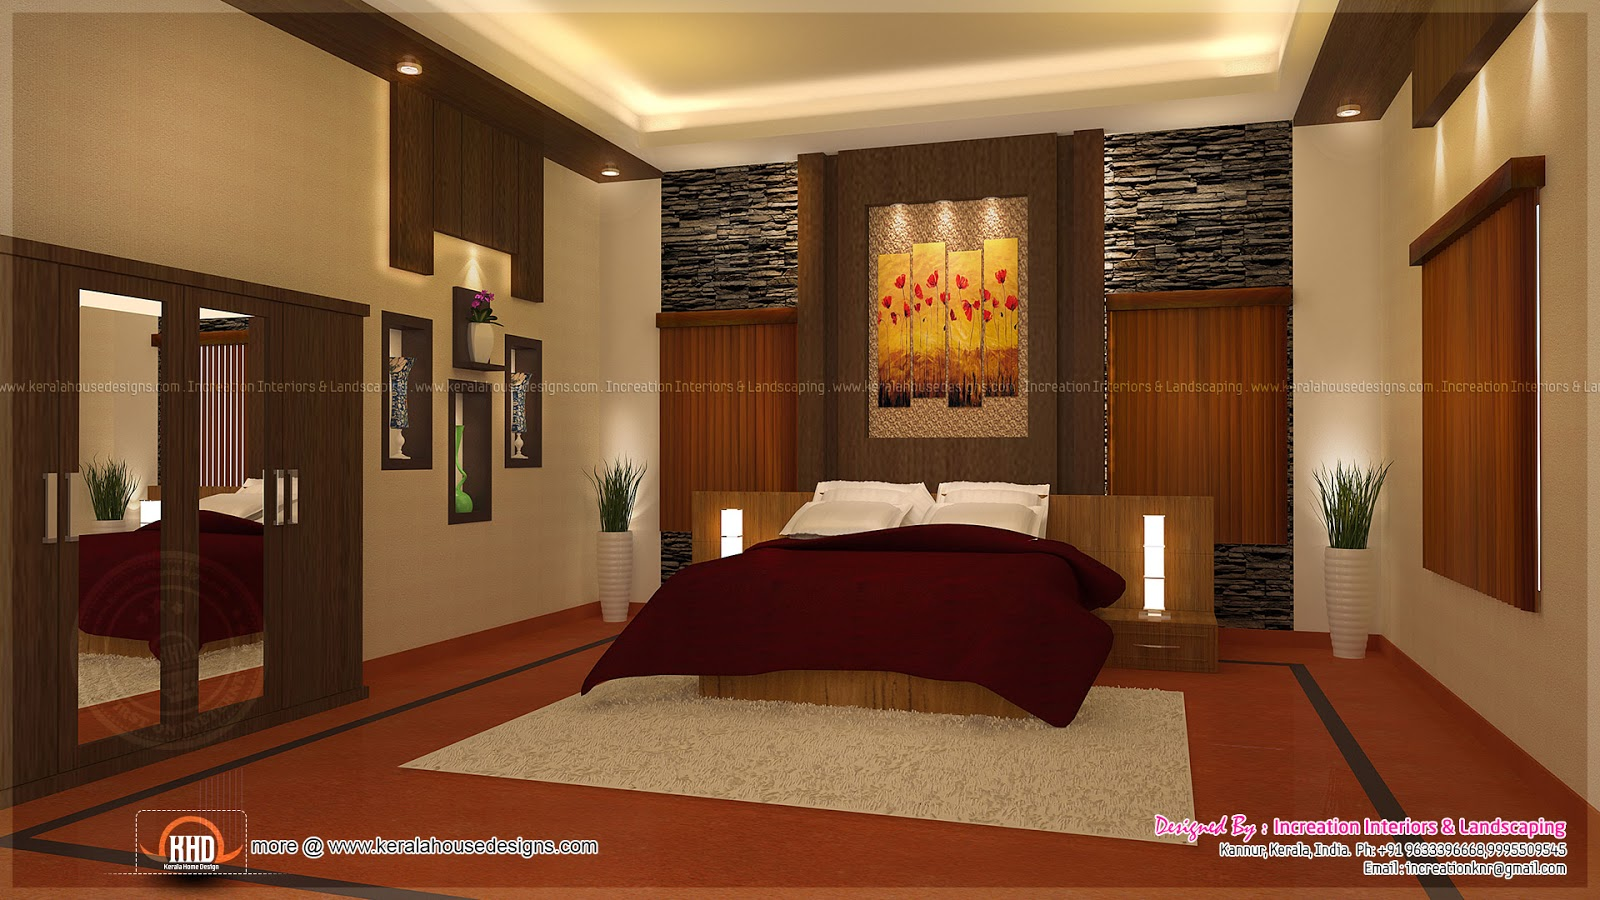 House interior ideas in 3d rendering home kerala plans for Interior house plans with photos